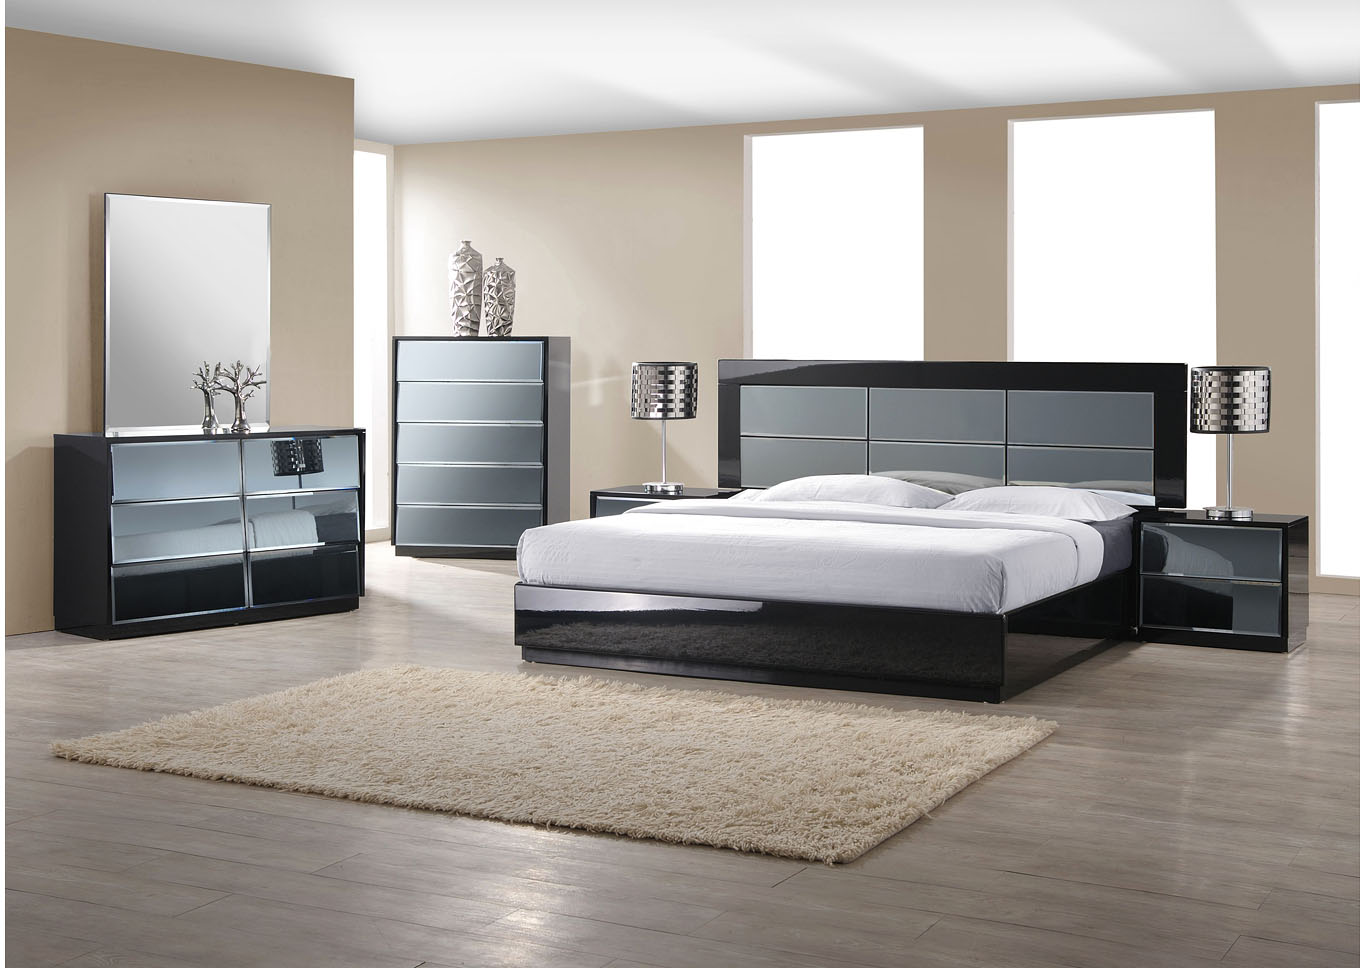 Venice Gloss Black Panel King Bed,Chintaly Imports